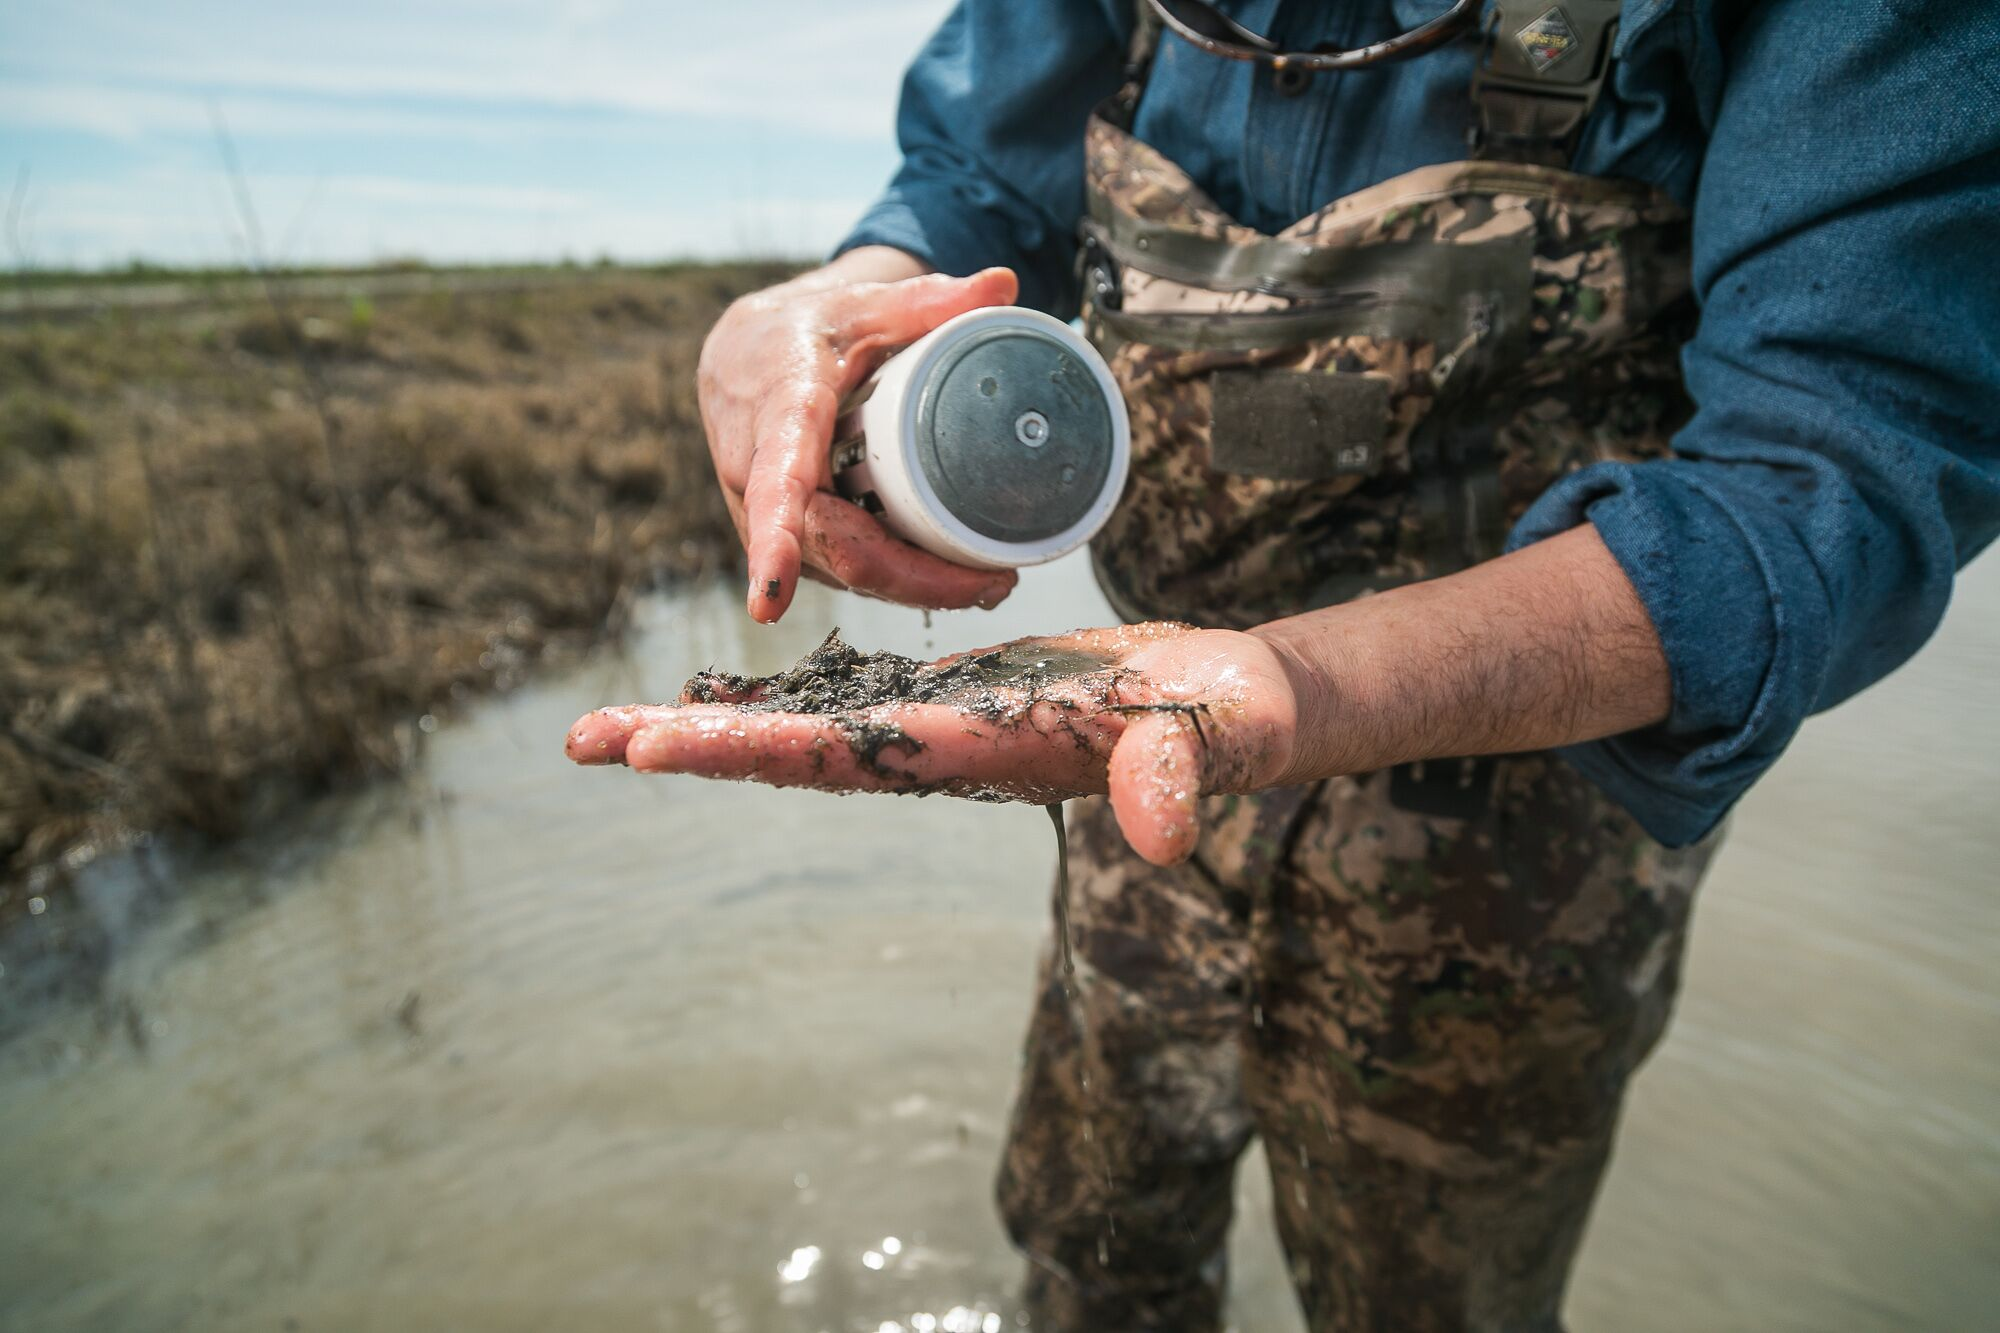 Jacob Katz examines the contents of a siphon after collecting a water sample in a flooded rice field near the Sacramento River.